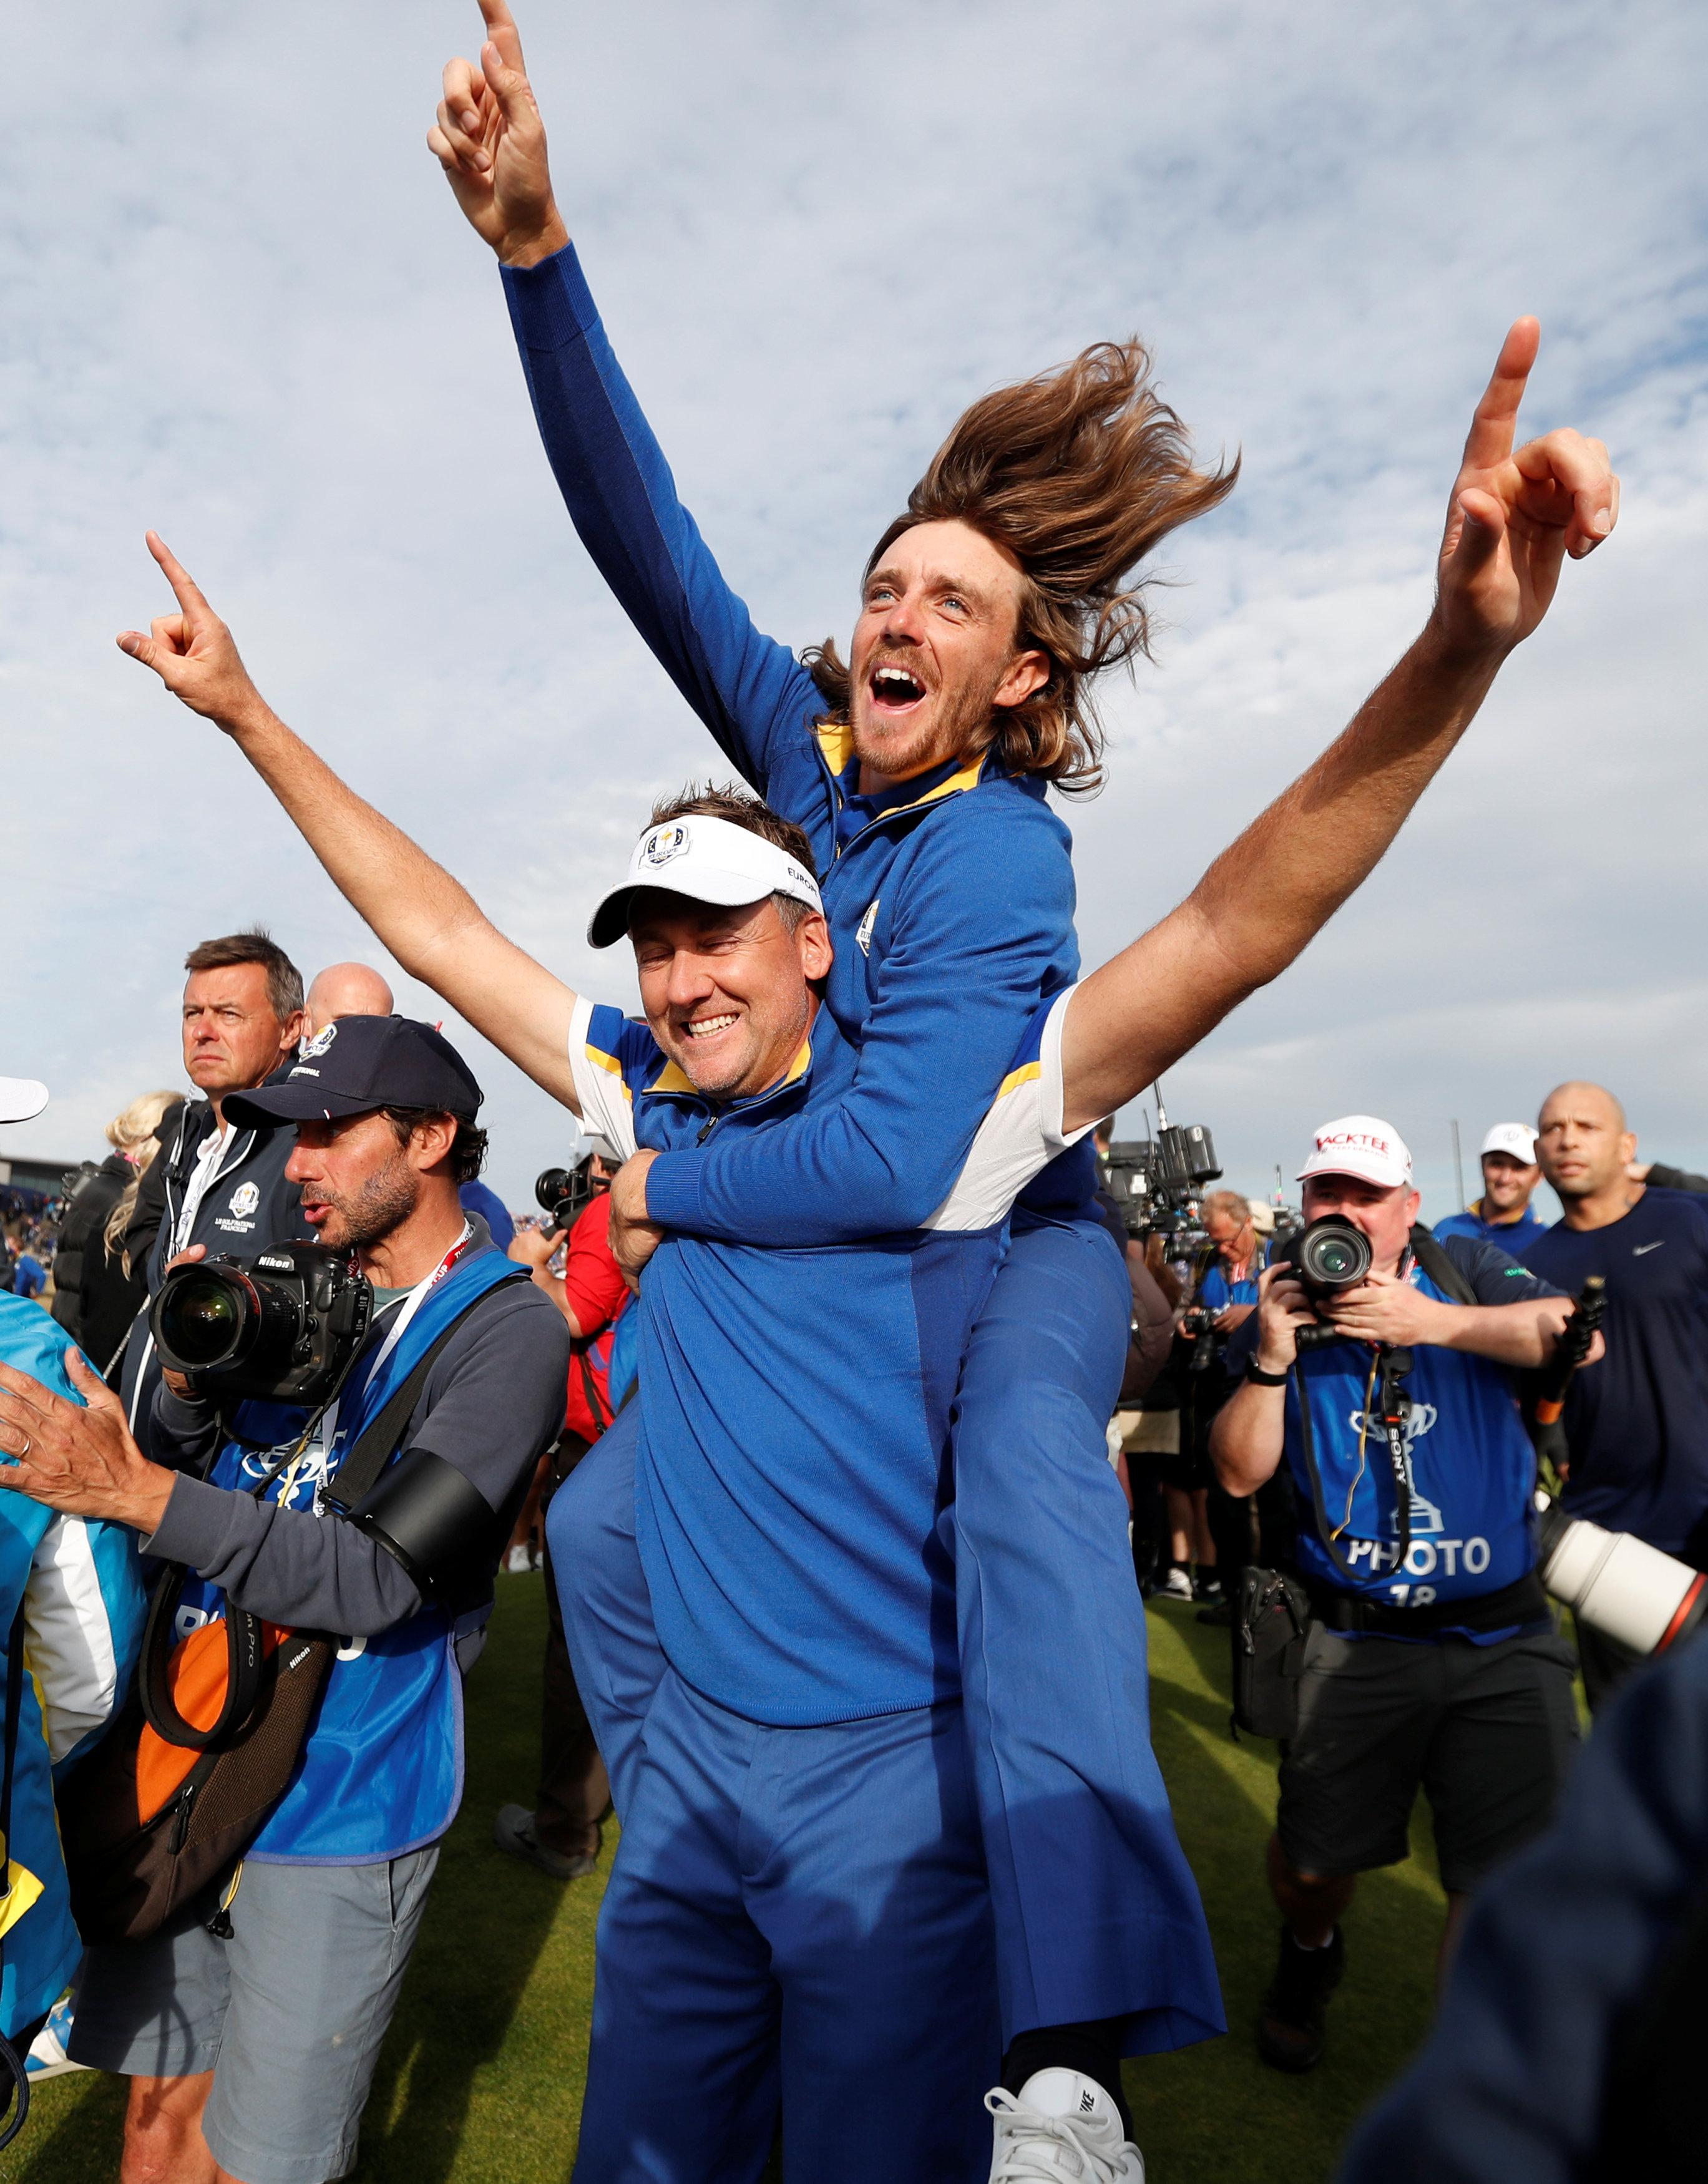 Fleetwood could not contain his joy after being on a winning European team for the first time